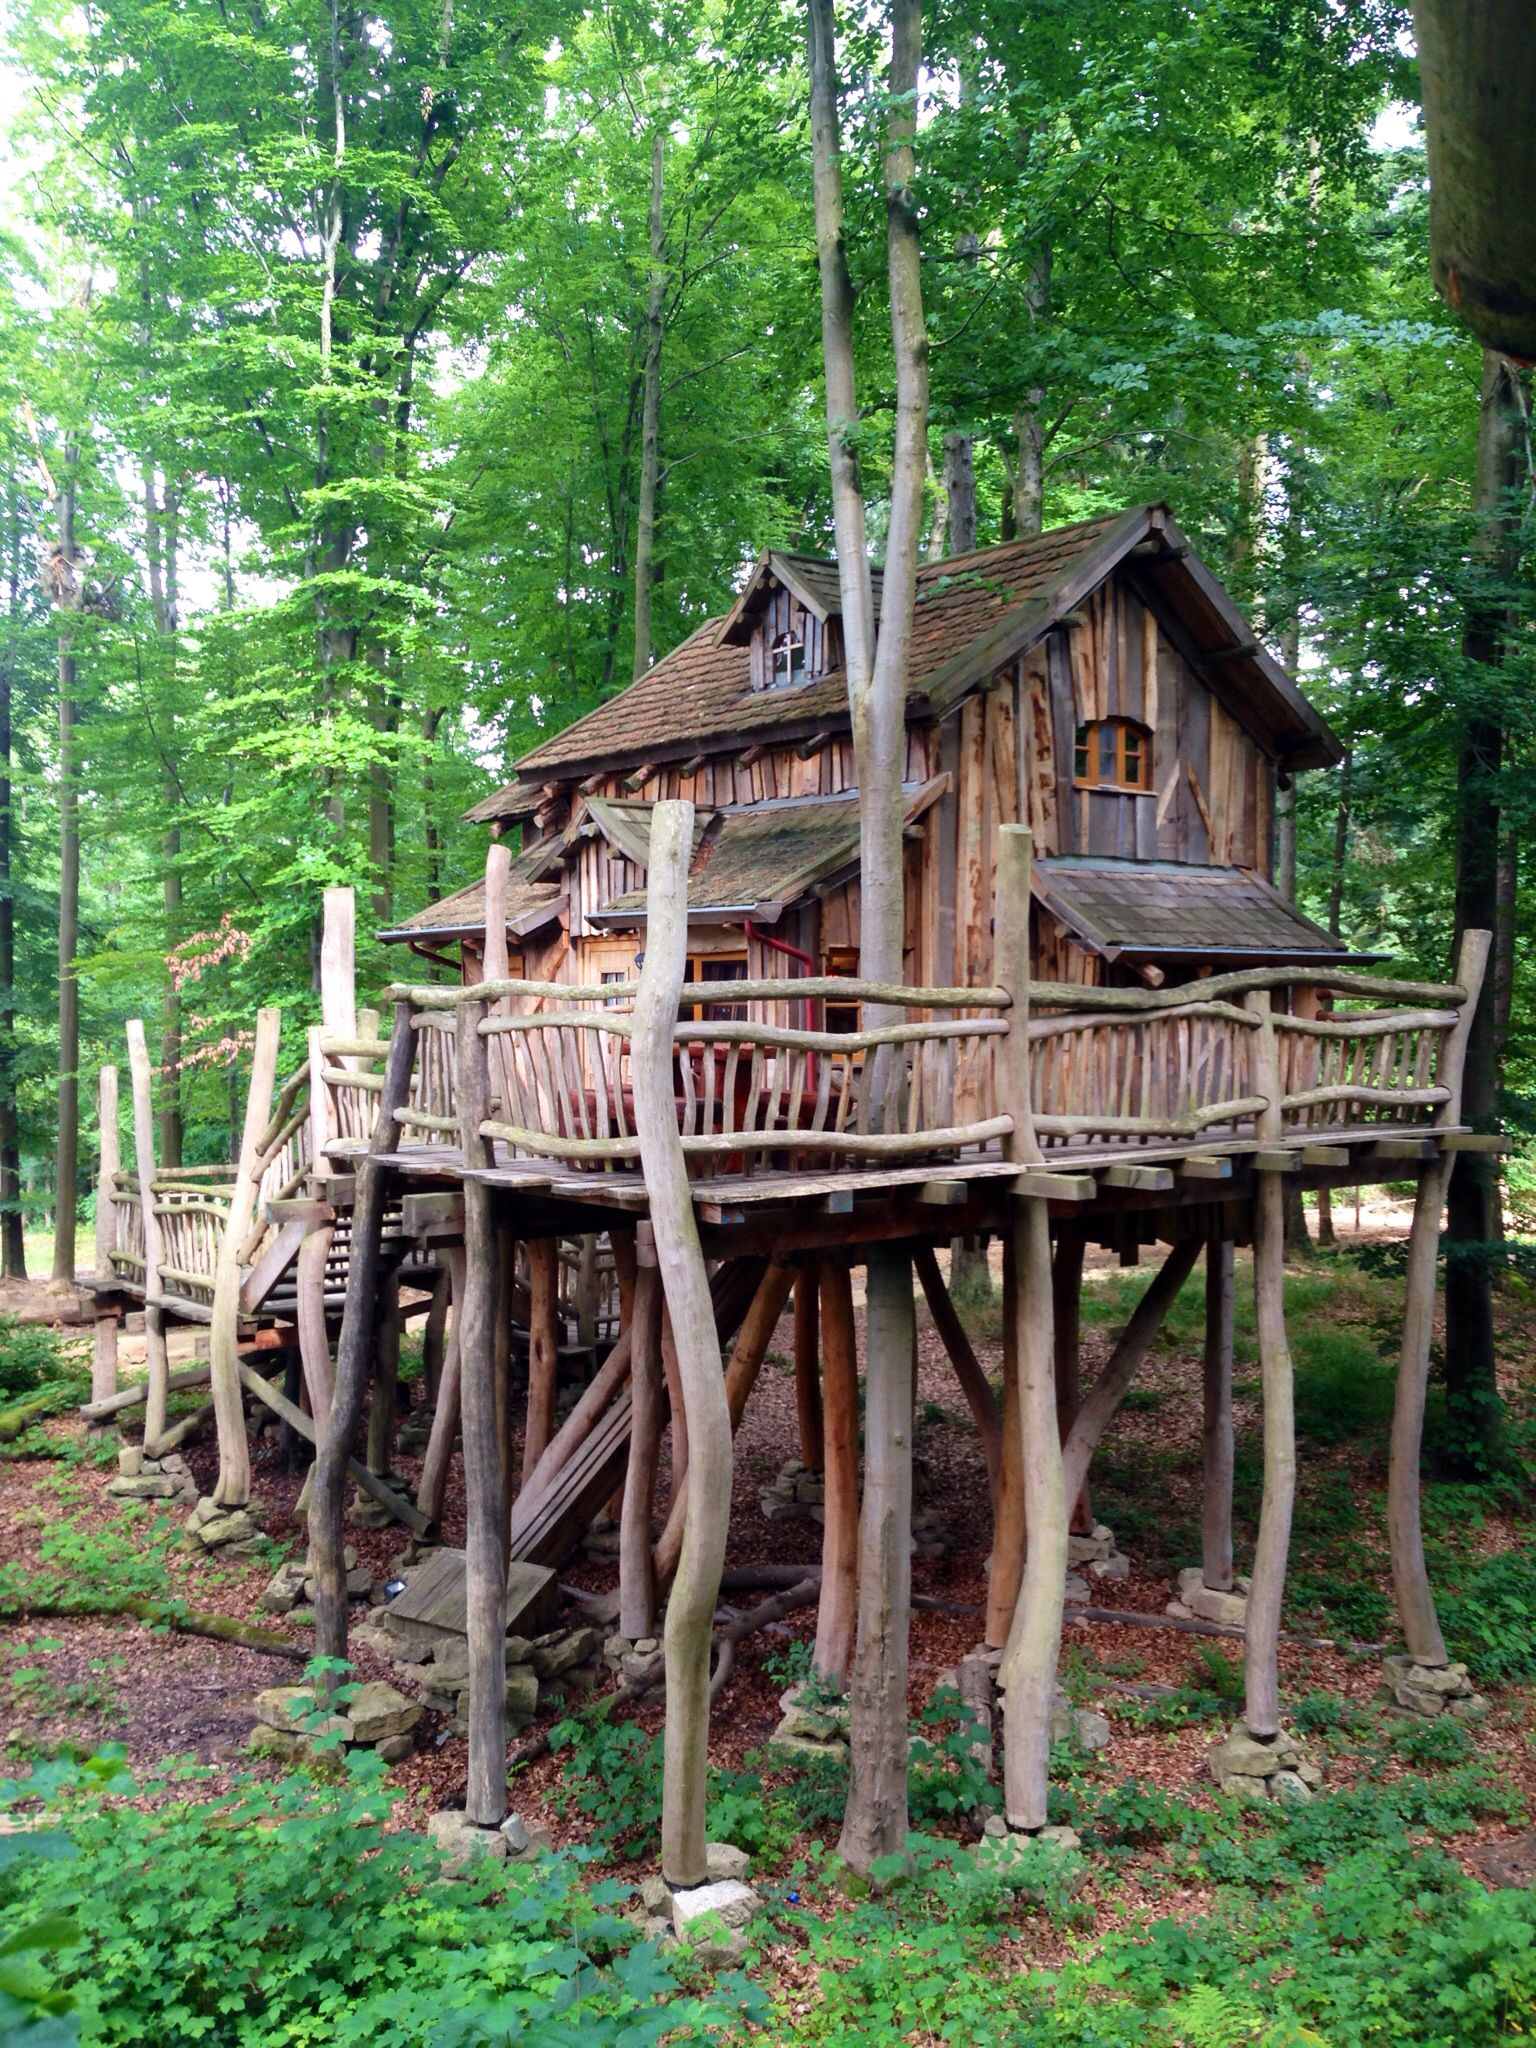 How To Build A Log Cabin From Trees